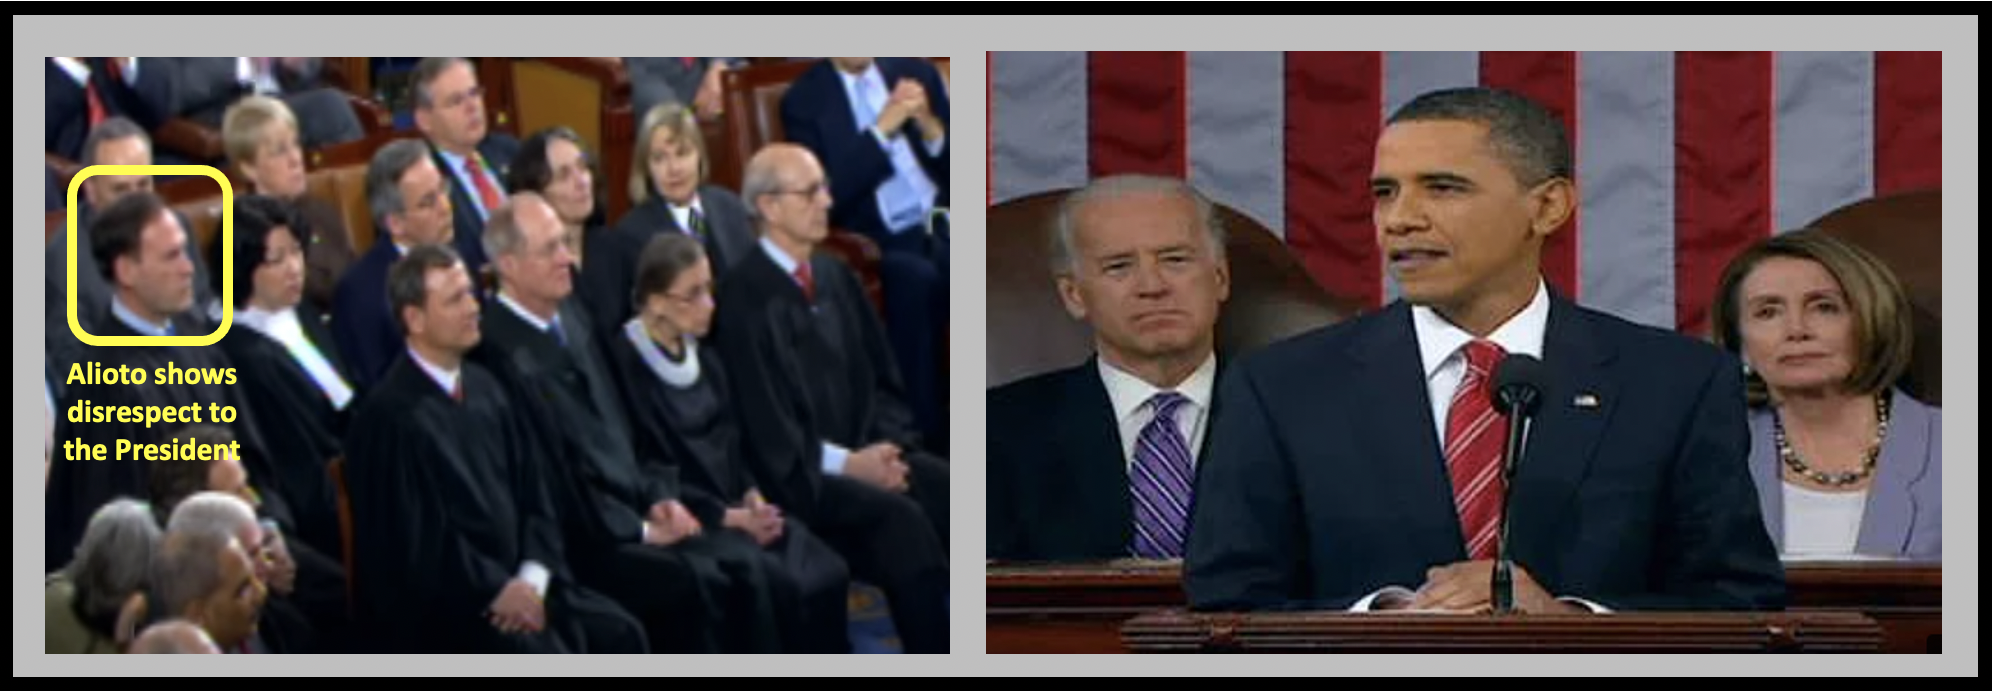 Alioto disrespects the President Obama during the 2010 State of the Union